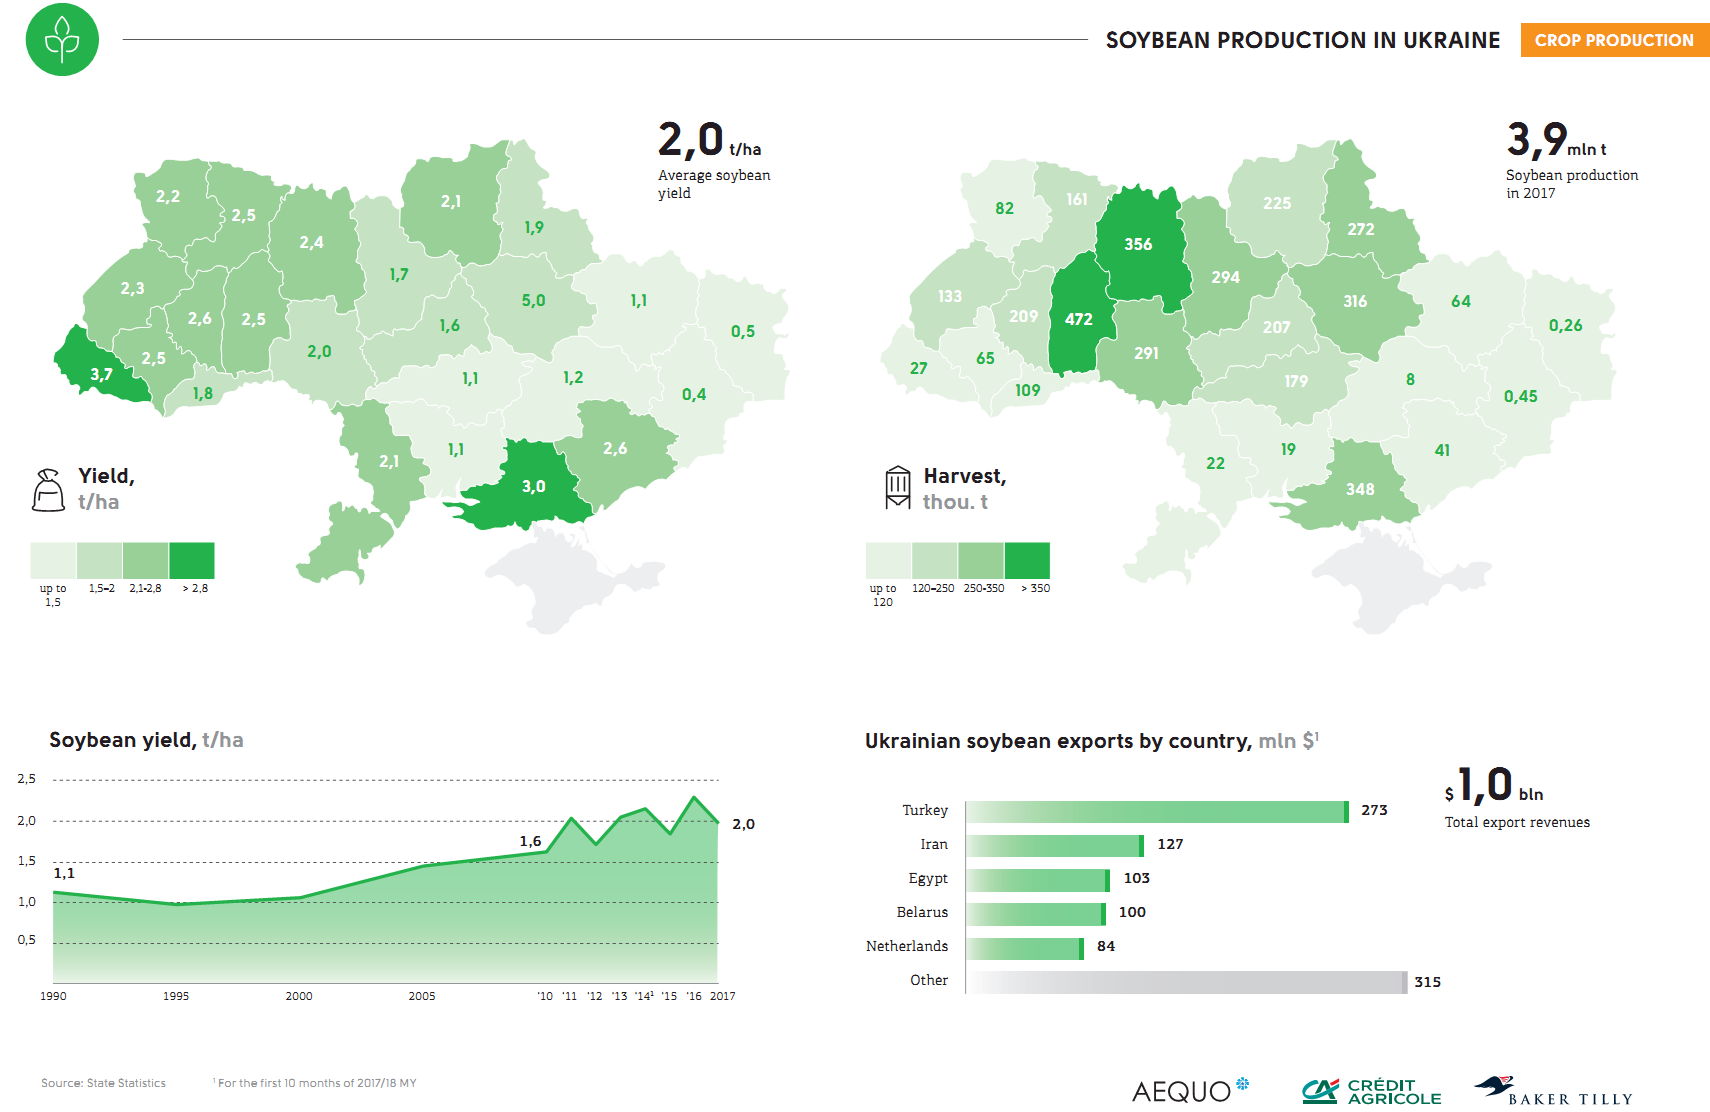 Soybean production in Ukraine (click for full resolution)